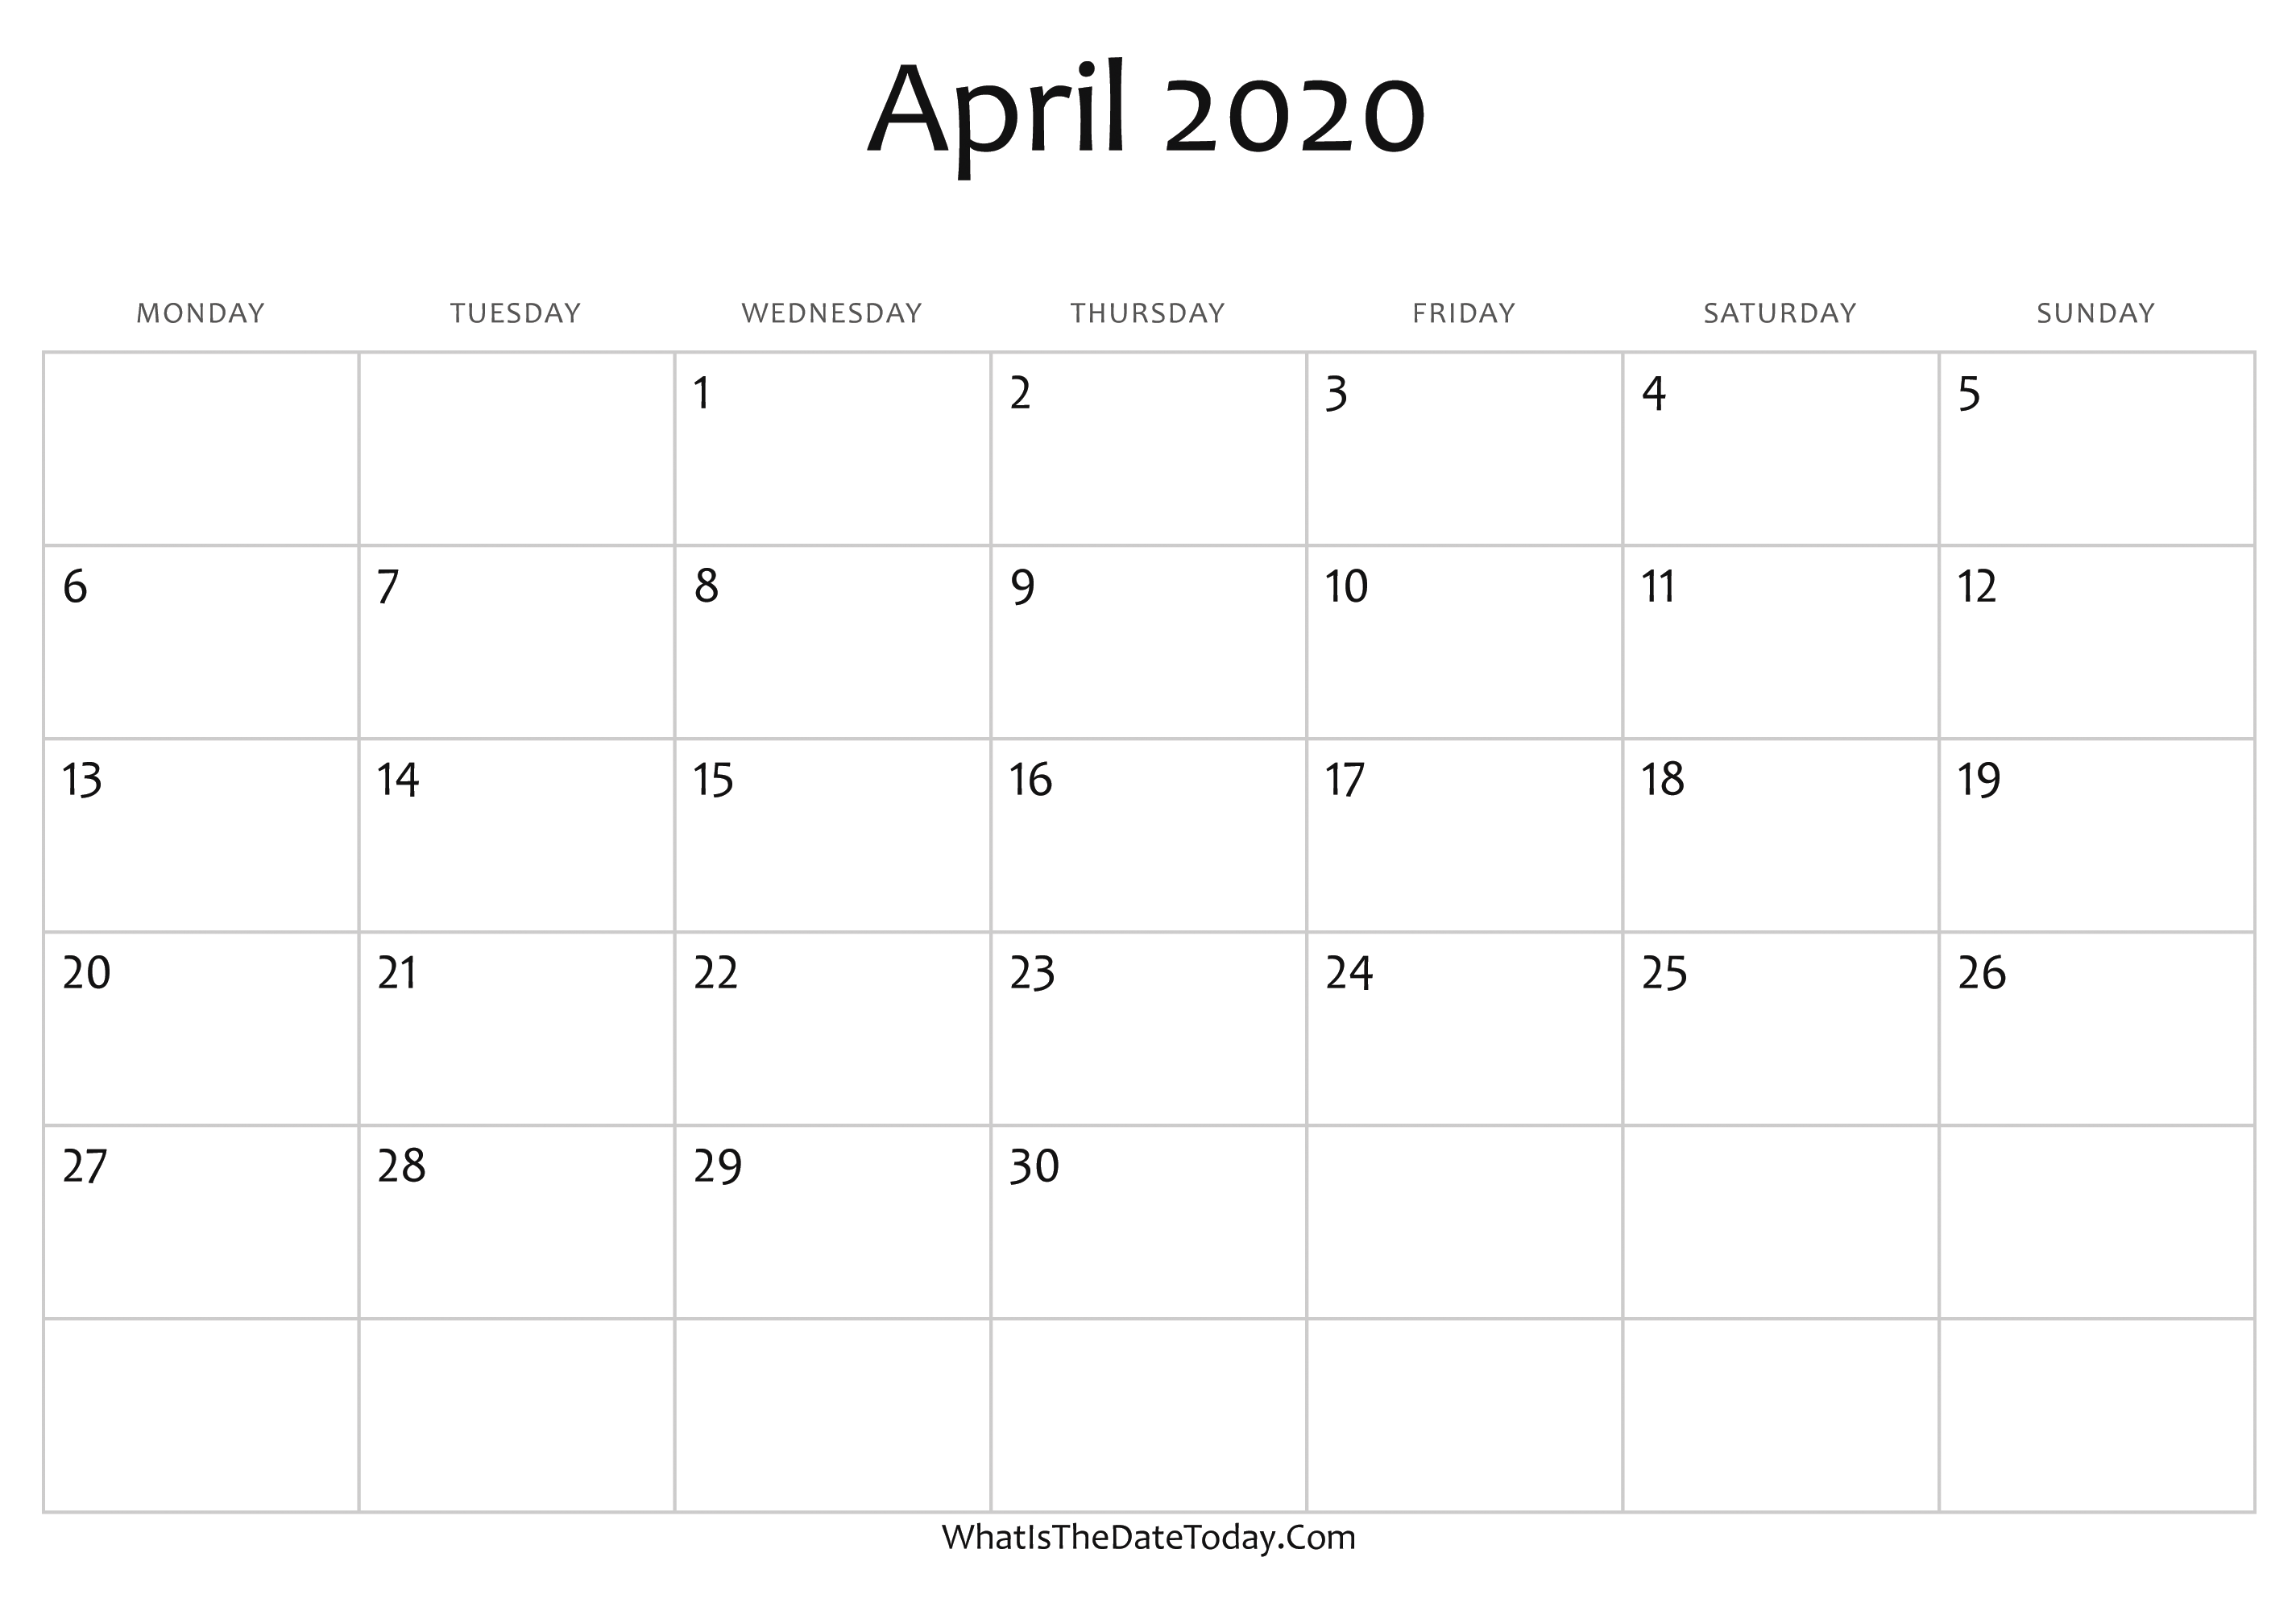 Calendar 2020 Blank Blank April Calendar 2020 Editable | Whatisthedatetoday.Com